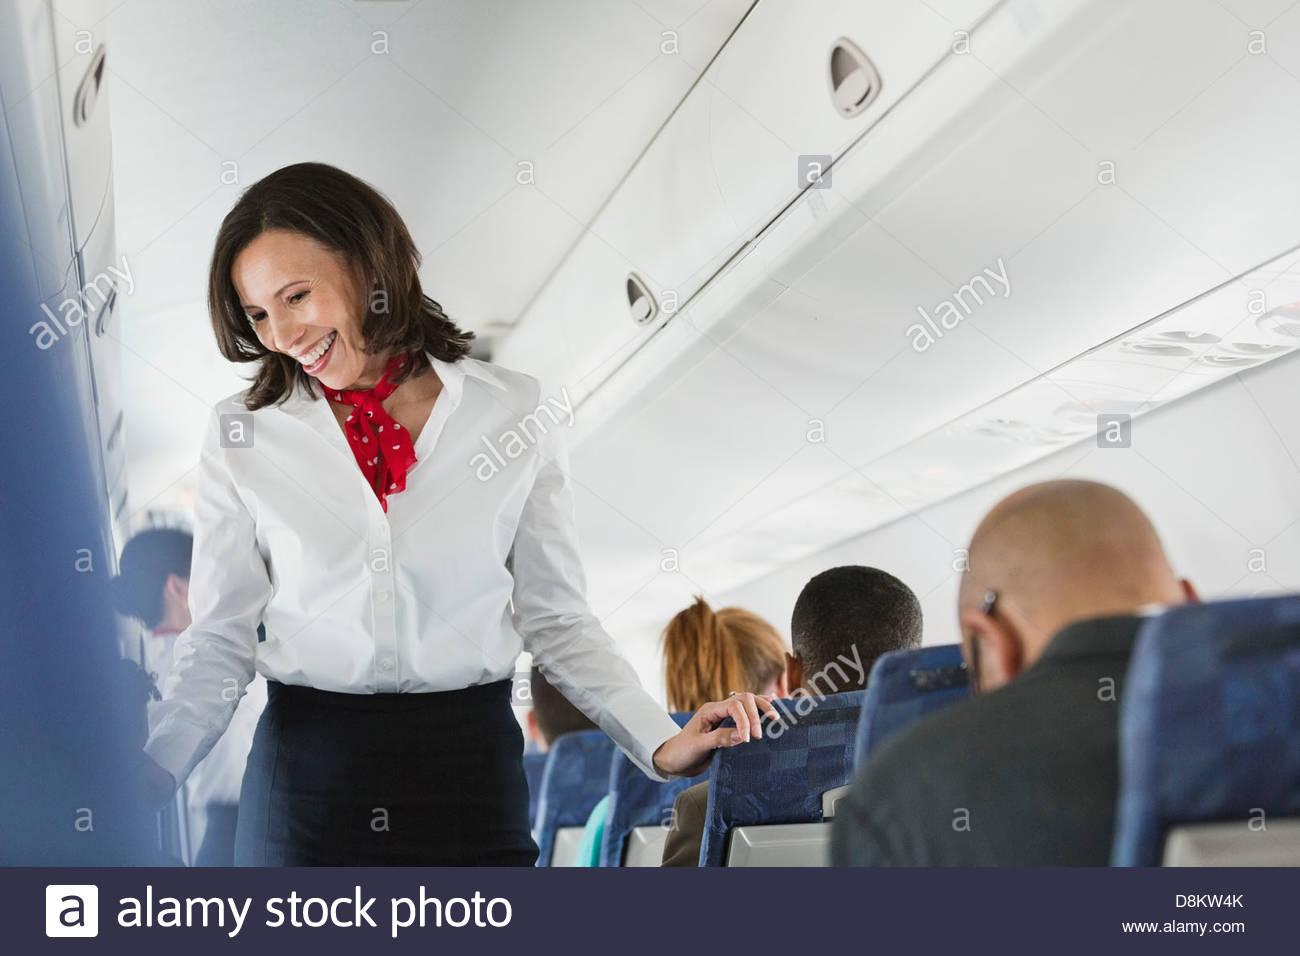 Flight attendant talking to passengers in airplane - Stock Image